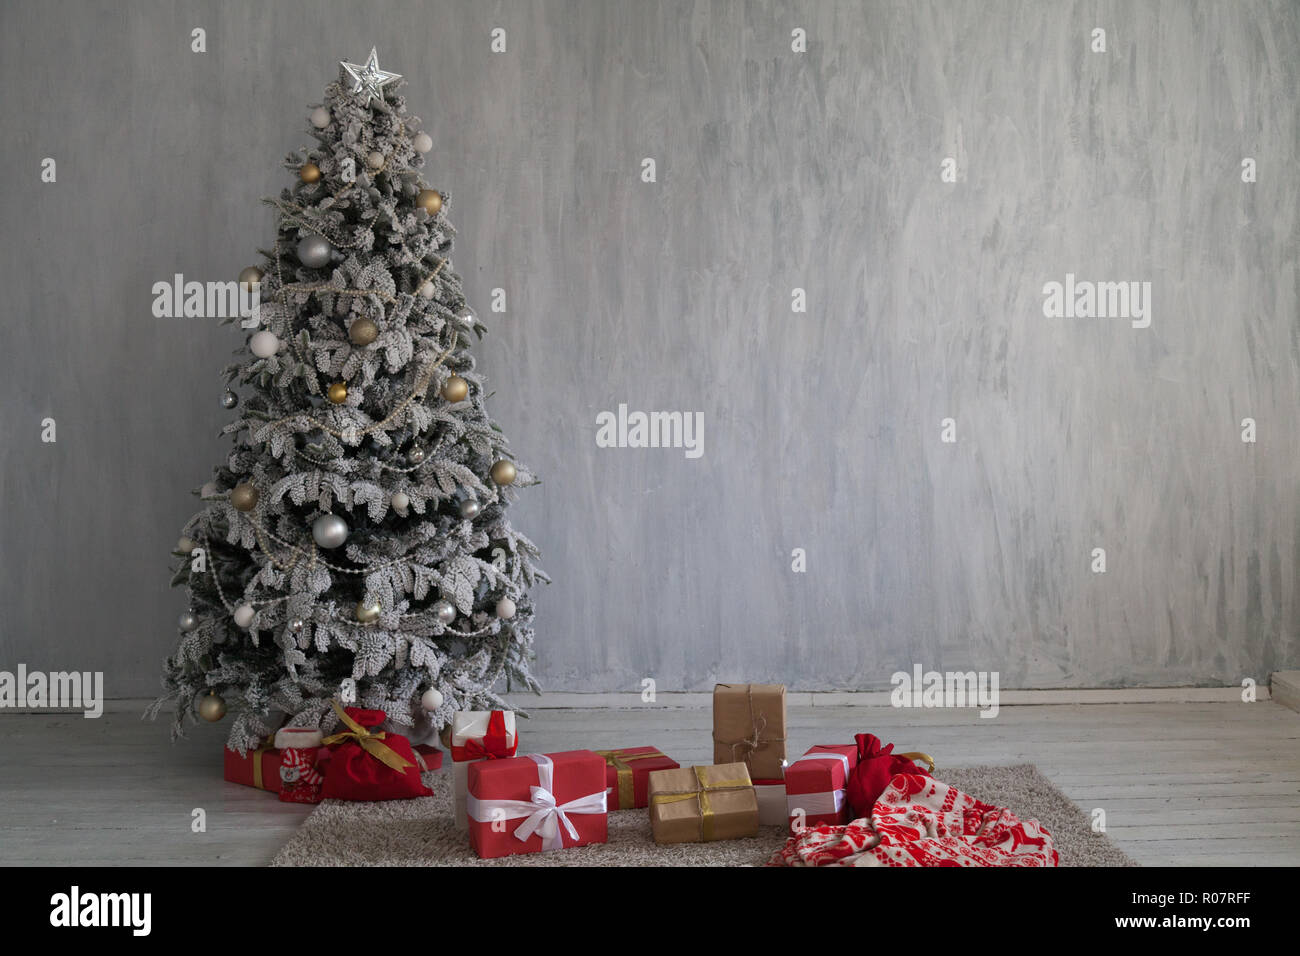 Winter Christmas New Year Tree Gifts Home Decor Stock Image